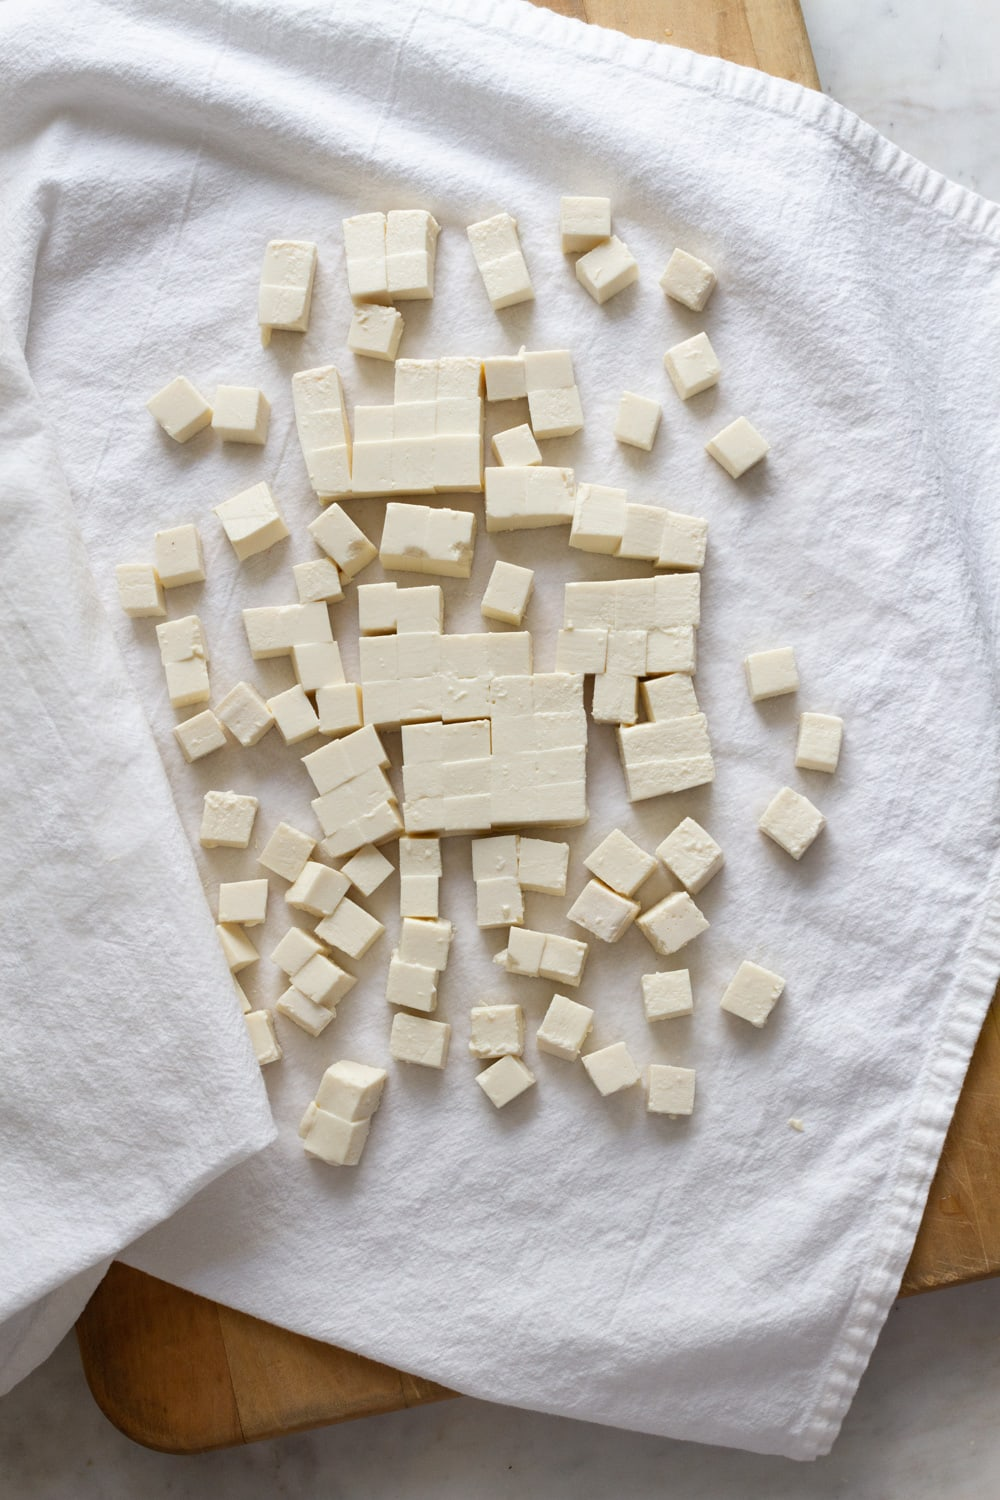 top down view of cubed tofu in between a dish towel to remove excess water.